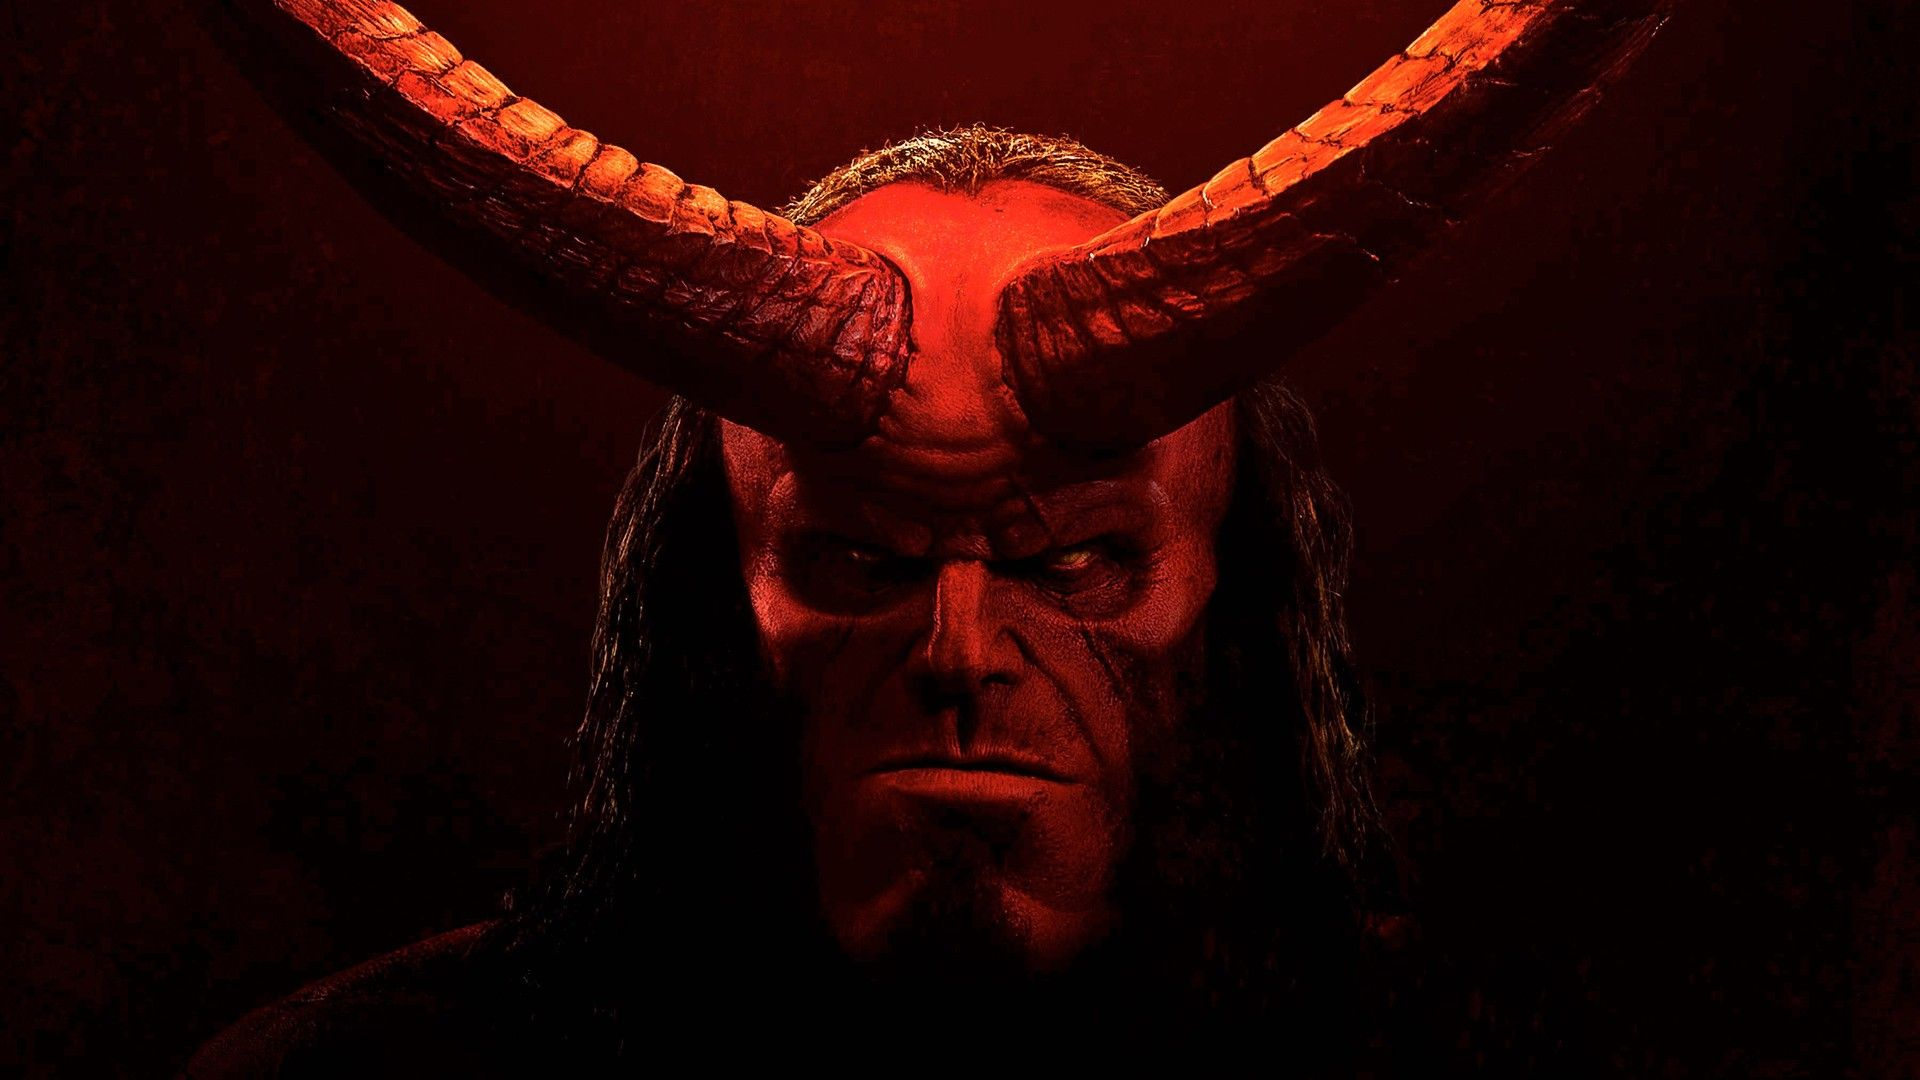 Wallpapers Hellboy Best Movie Poster Wallpaper Hd Movie Poster